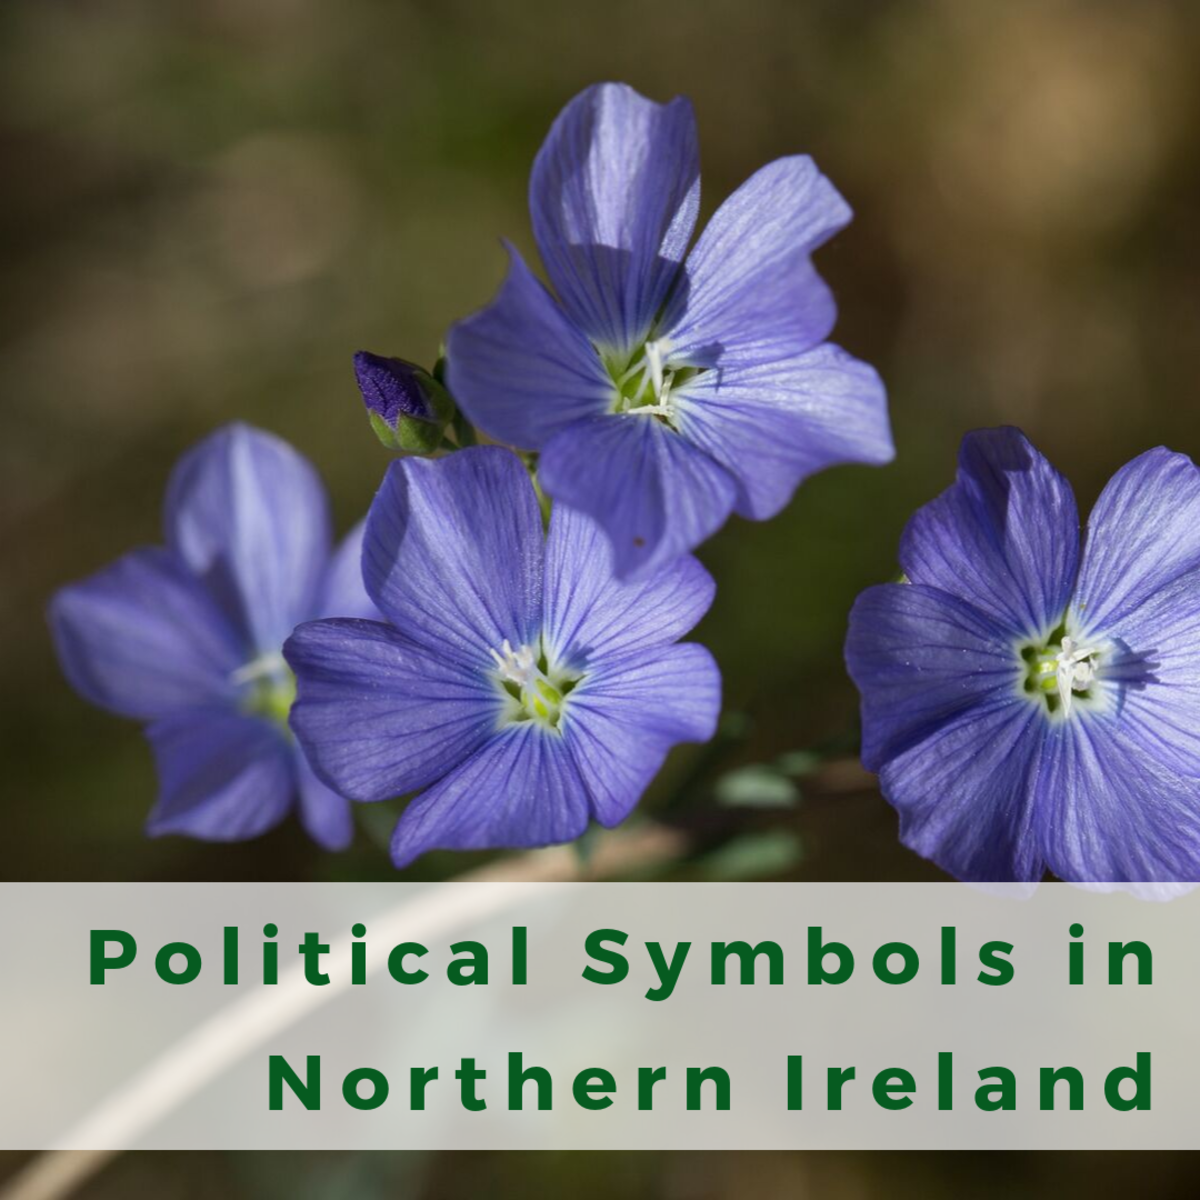 A Guide to Shared and Contested Political Symbols in Northern Ireland